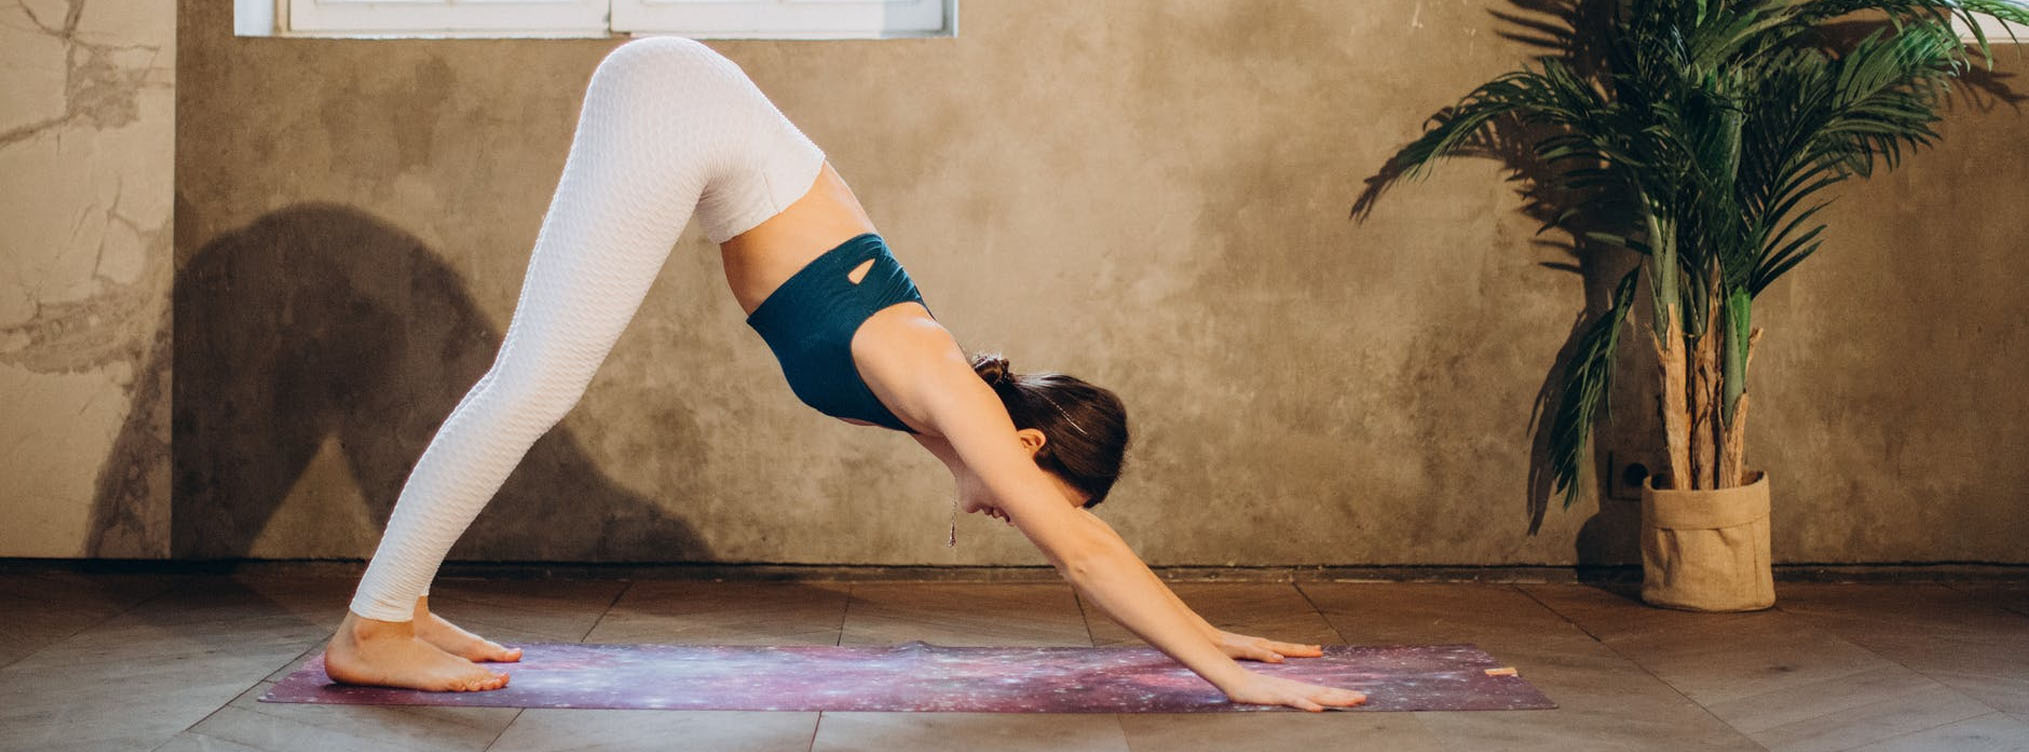 Downward dog: new moon yoga practise